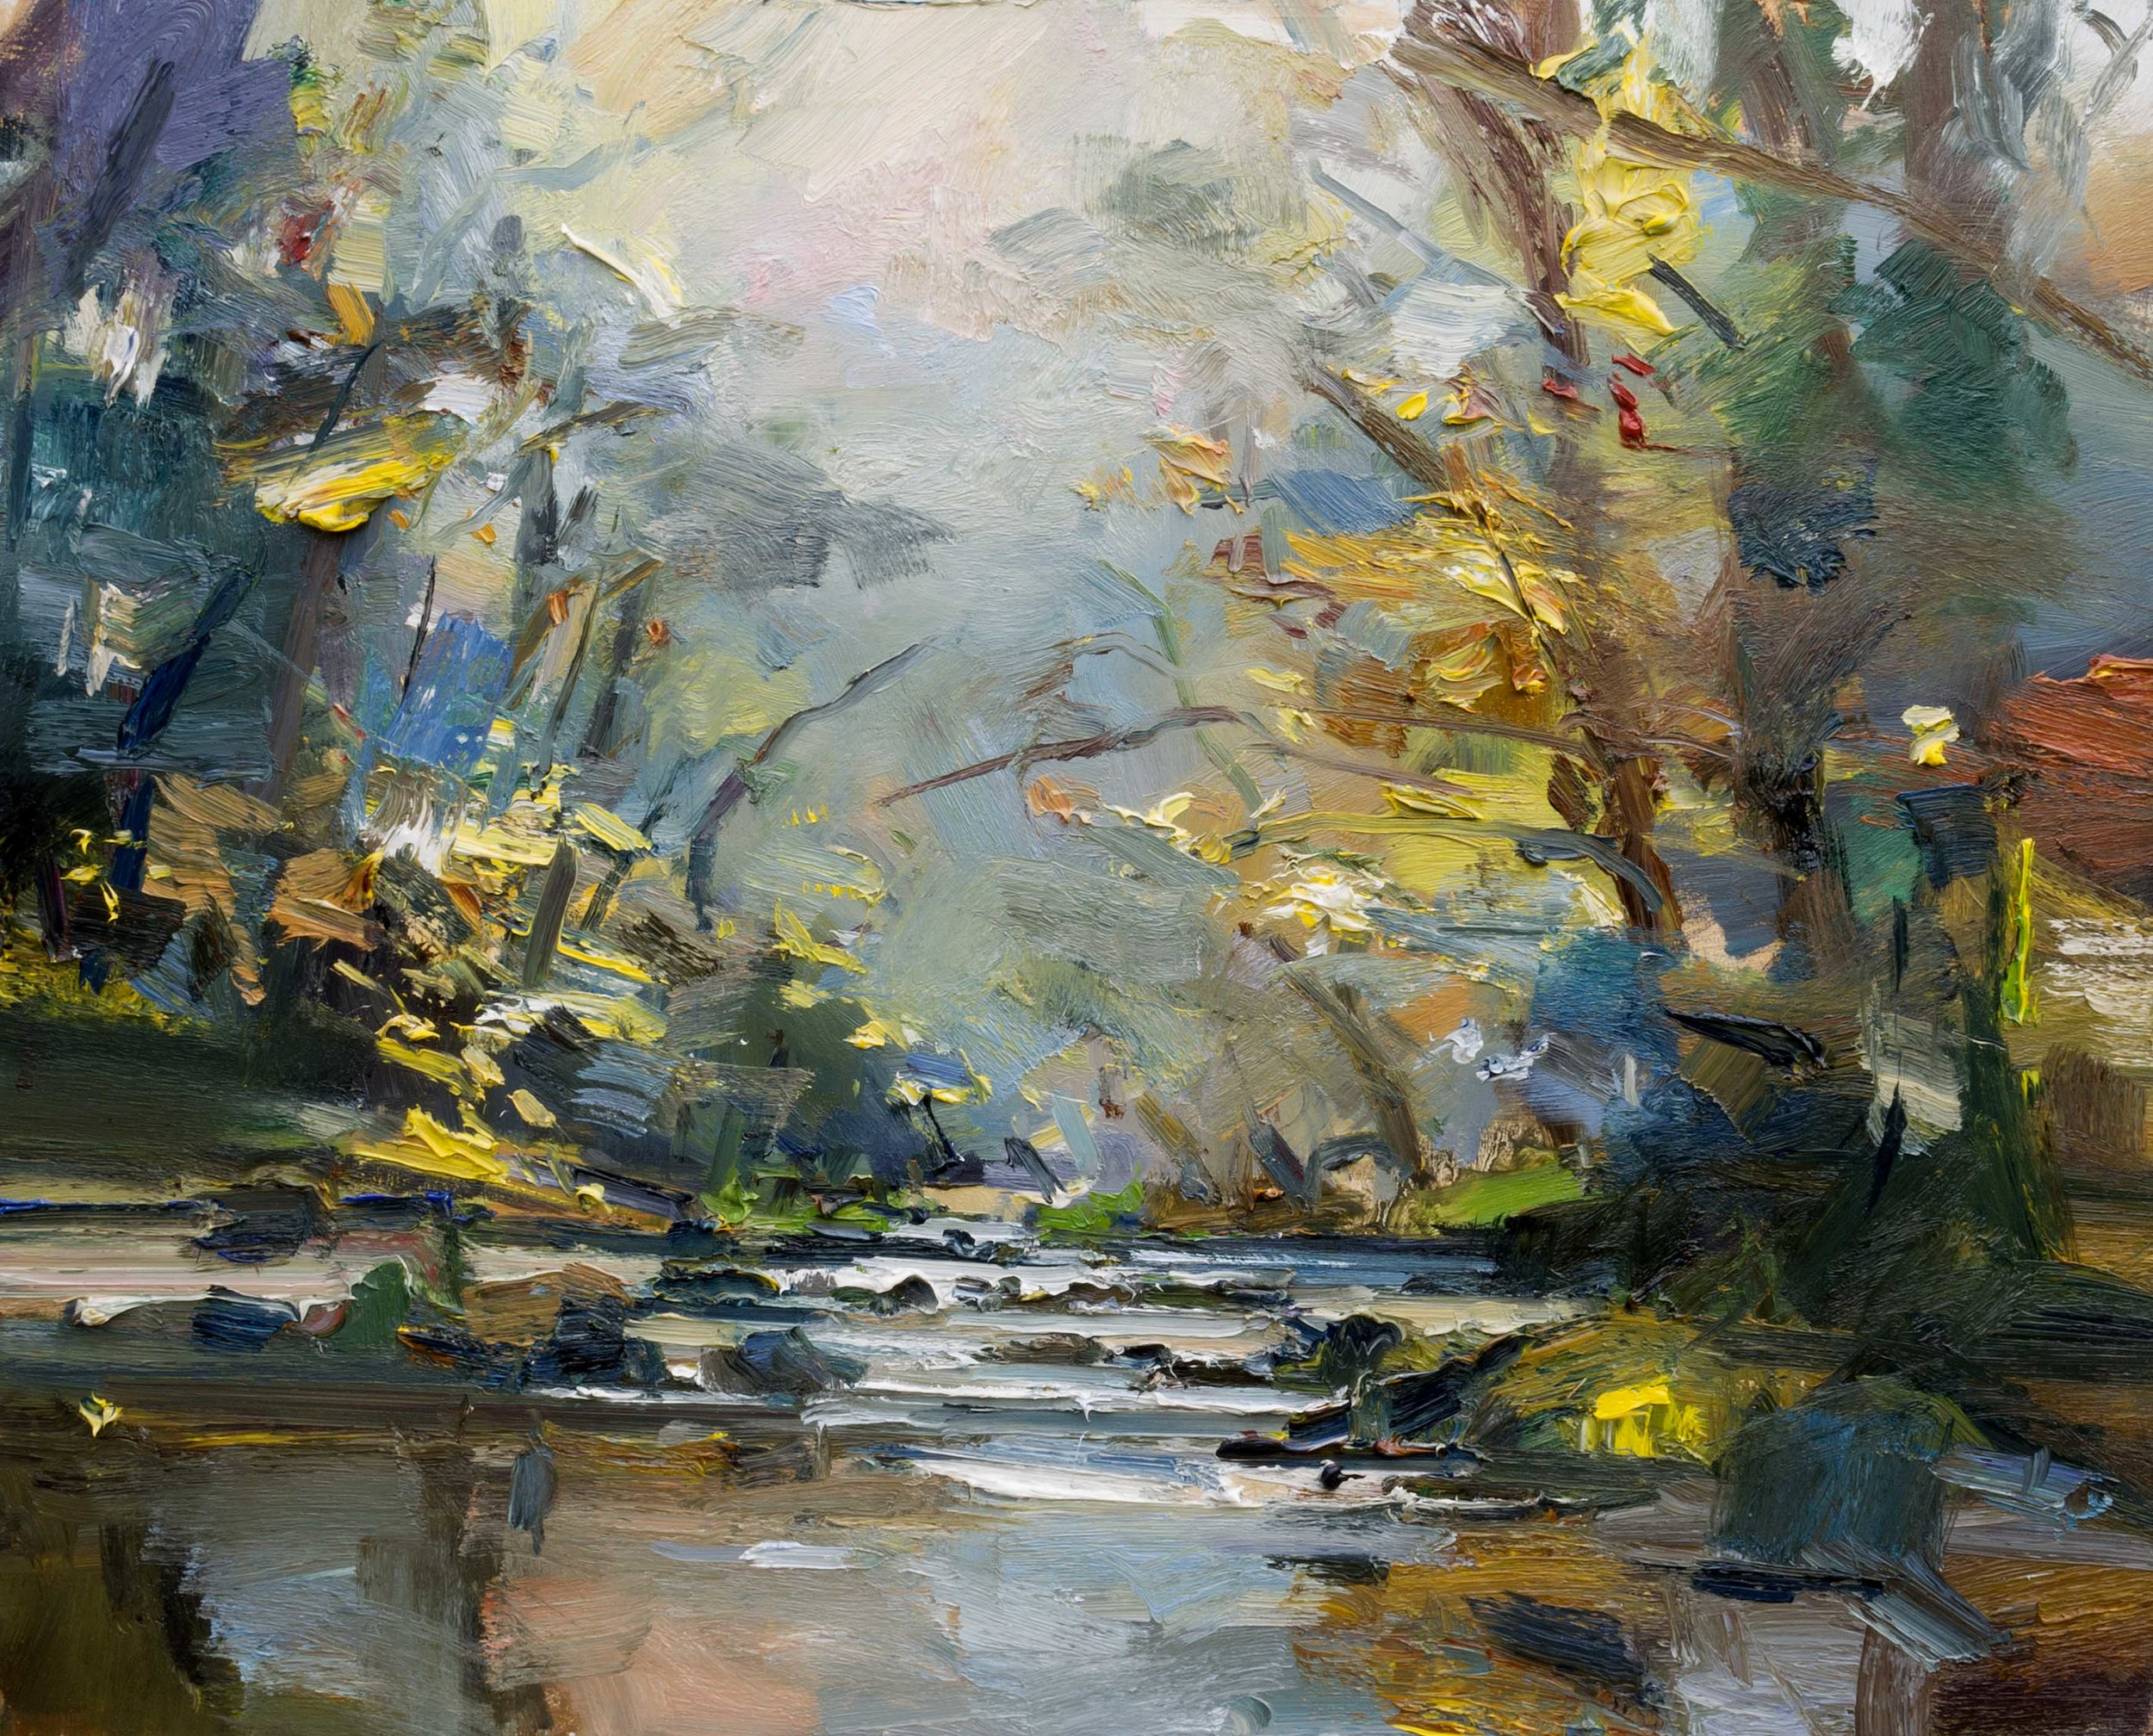 20. The River Plym in Autumn 61x76 ob copy.jpg